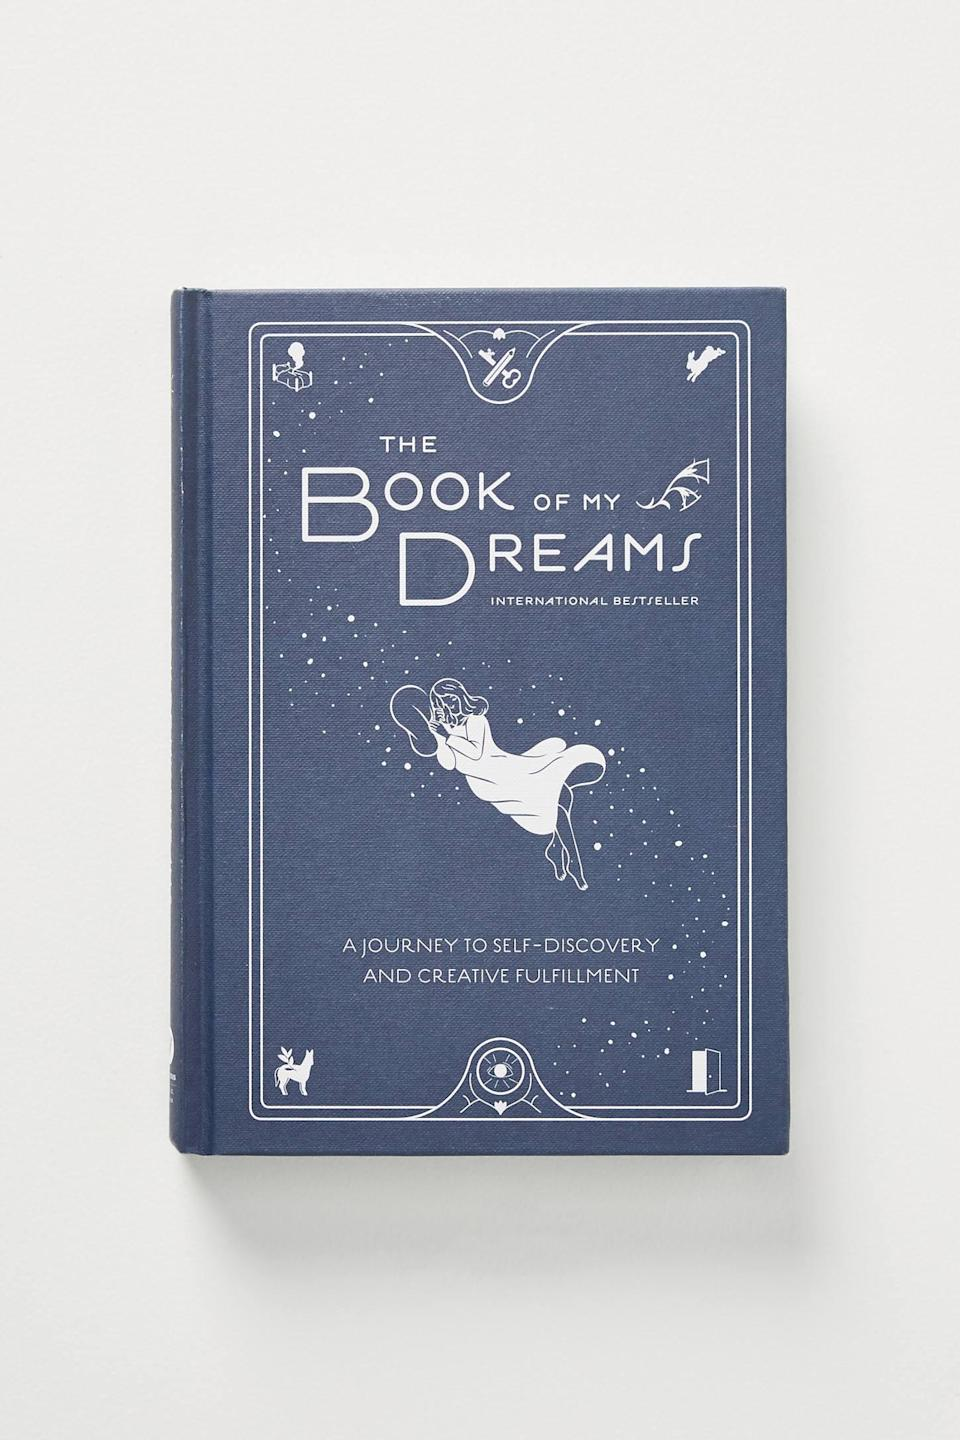 "<br><br><strong>Little Brown & Company</strong> The Book Of My Dreams, $, available at <a href=""https://go.skimresources.com/?id=30283X879131&url=https%3A%2F%2Fwww.anthropologie.com%2Fshop%2Fthe-book-of-my-dreams%3Fcolor%3D000%26type%3DSTANDARD%26size%3DOne%2520Size%26quantity%3D1"" rel=""nofollow noopener"" target=""_blank"" data-ylk=""slk:Anthropologie"" class=""link rapid-noclick-resp"">Anthropologie</a>"